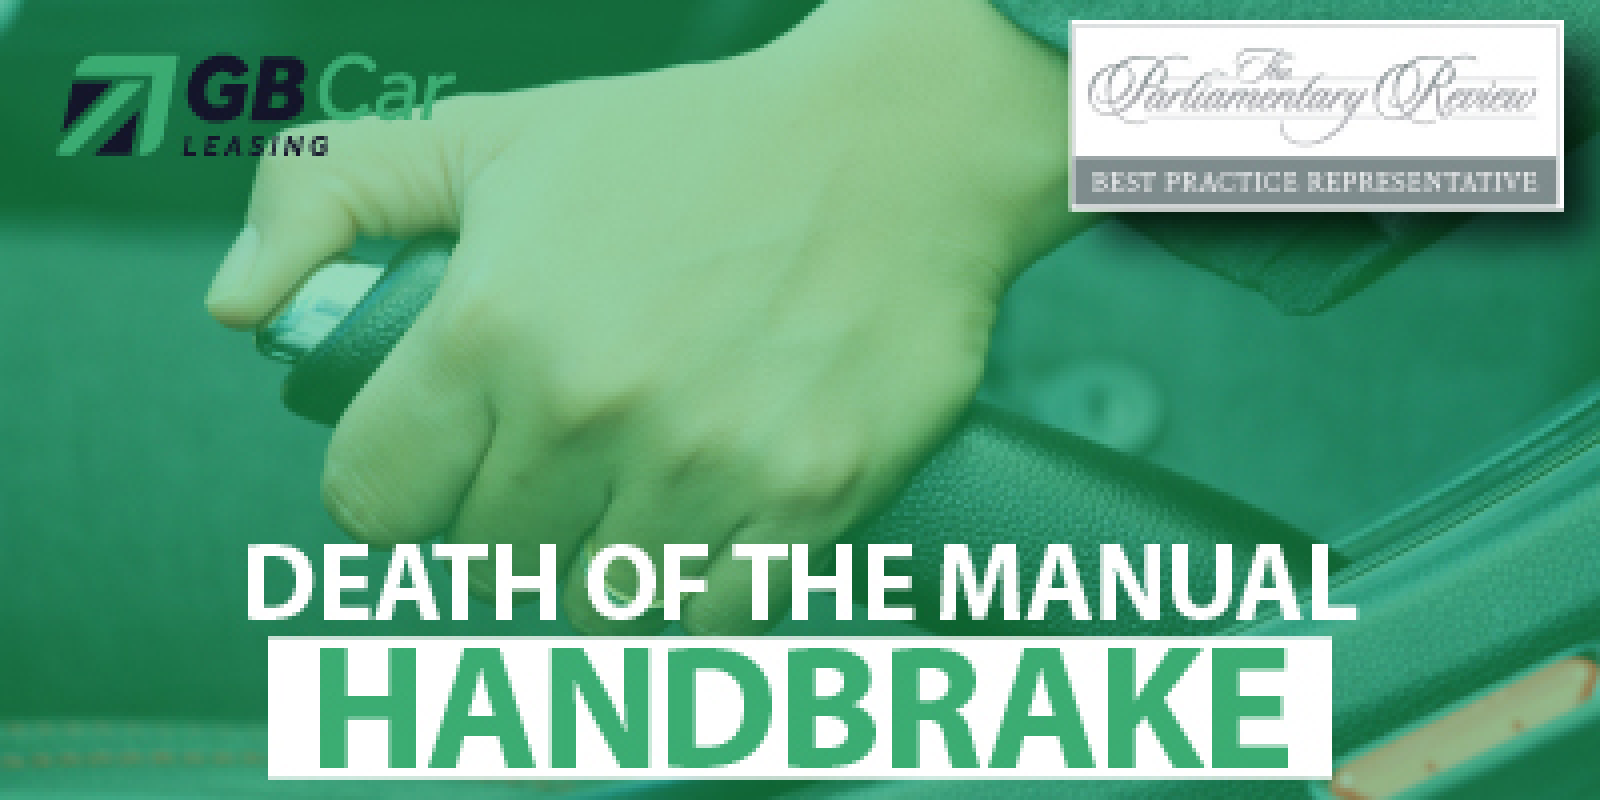 Death of the manual handbrake: 30 per cent of new cars have manual handbrake